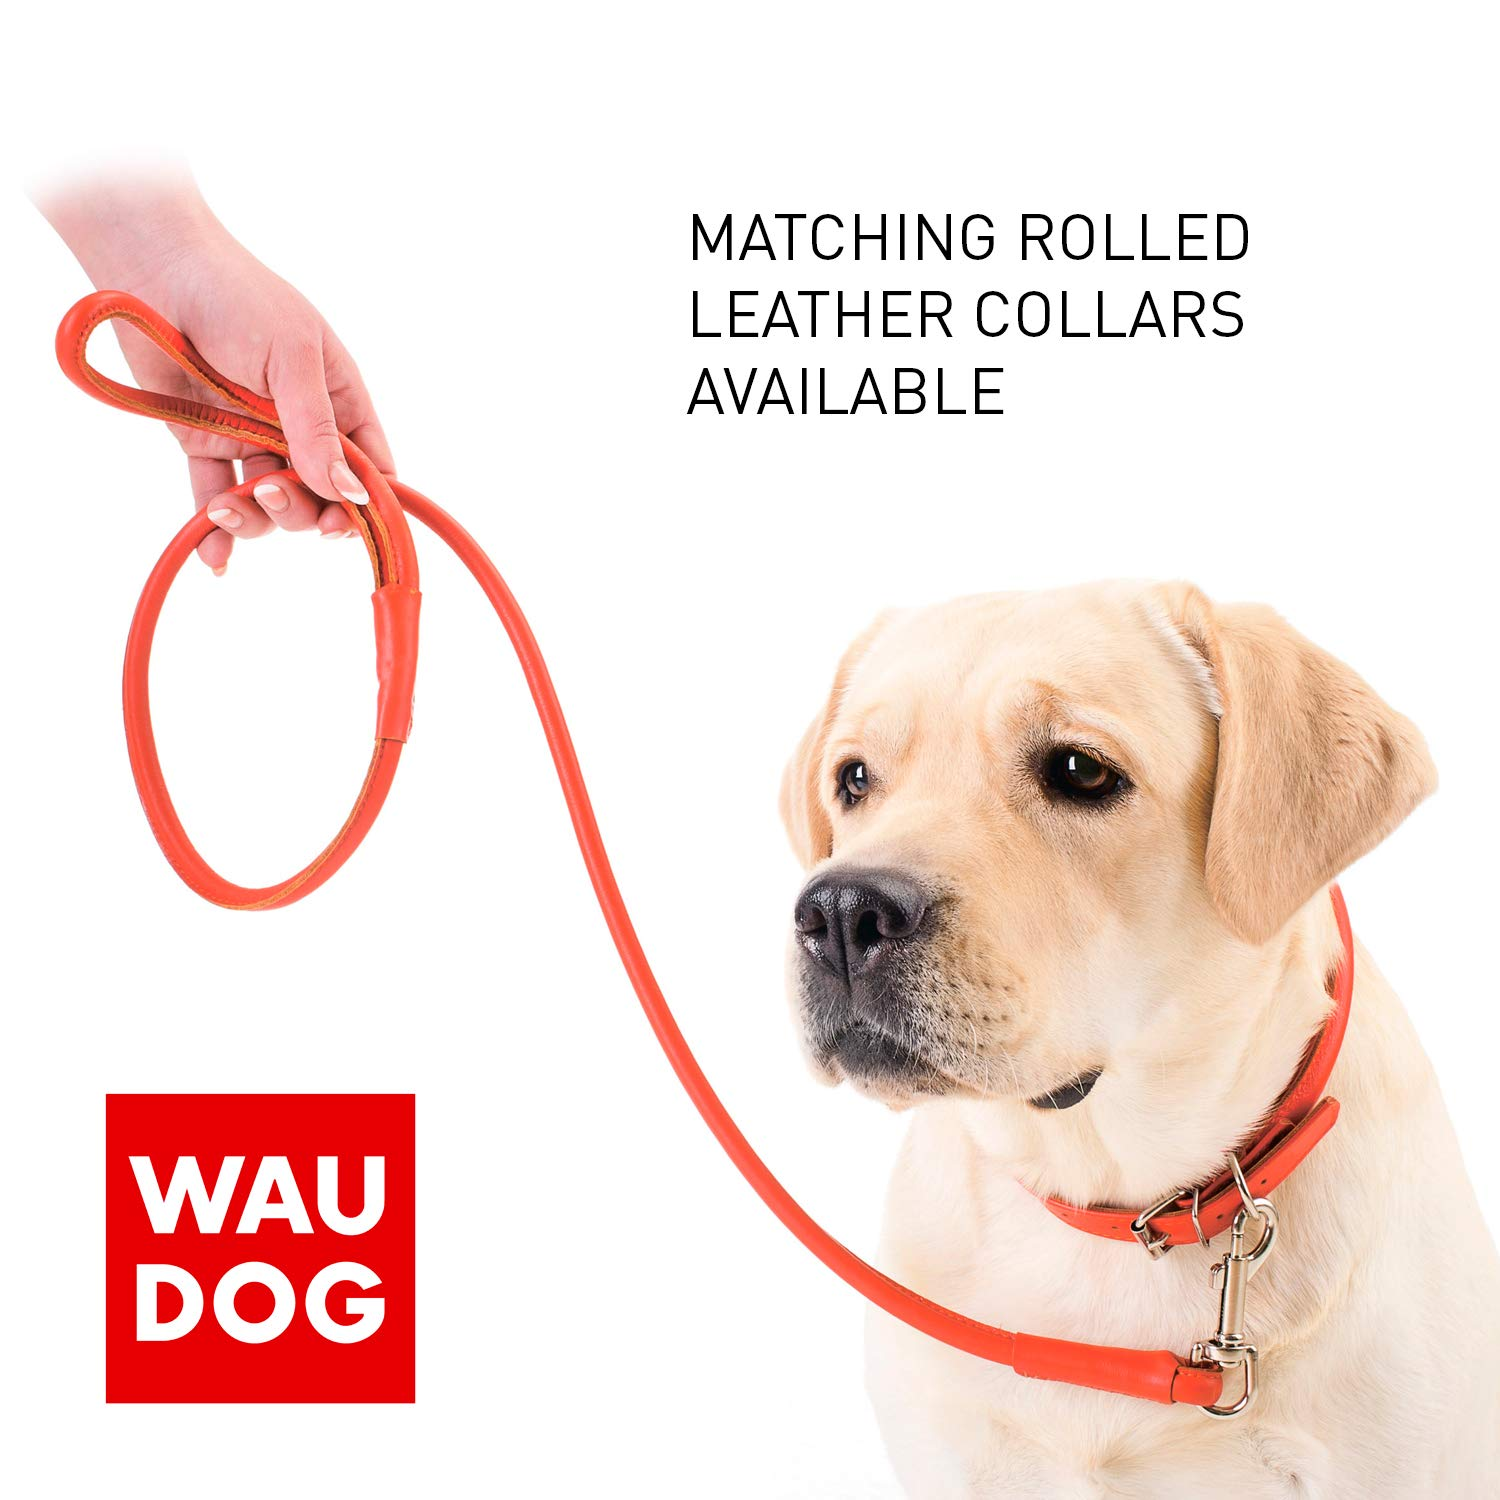 Rolled Leather Dog Leash 4 ft - Soft Dog Lead for Small Medium Large Dogs Puppy - Red Blue Pink Purple Green Black Pet Leashes for Outdoor Walking Running Training Plus (Mint Green, 4 Ft x 3/8'' Wide) by WAUDOG (Image #4)